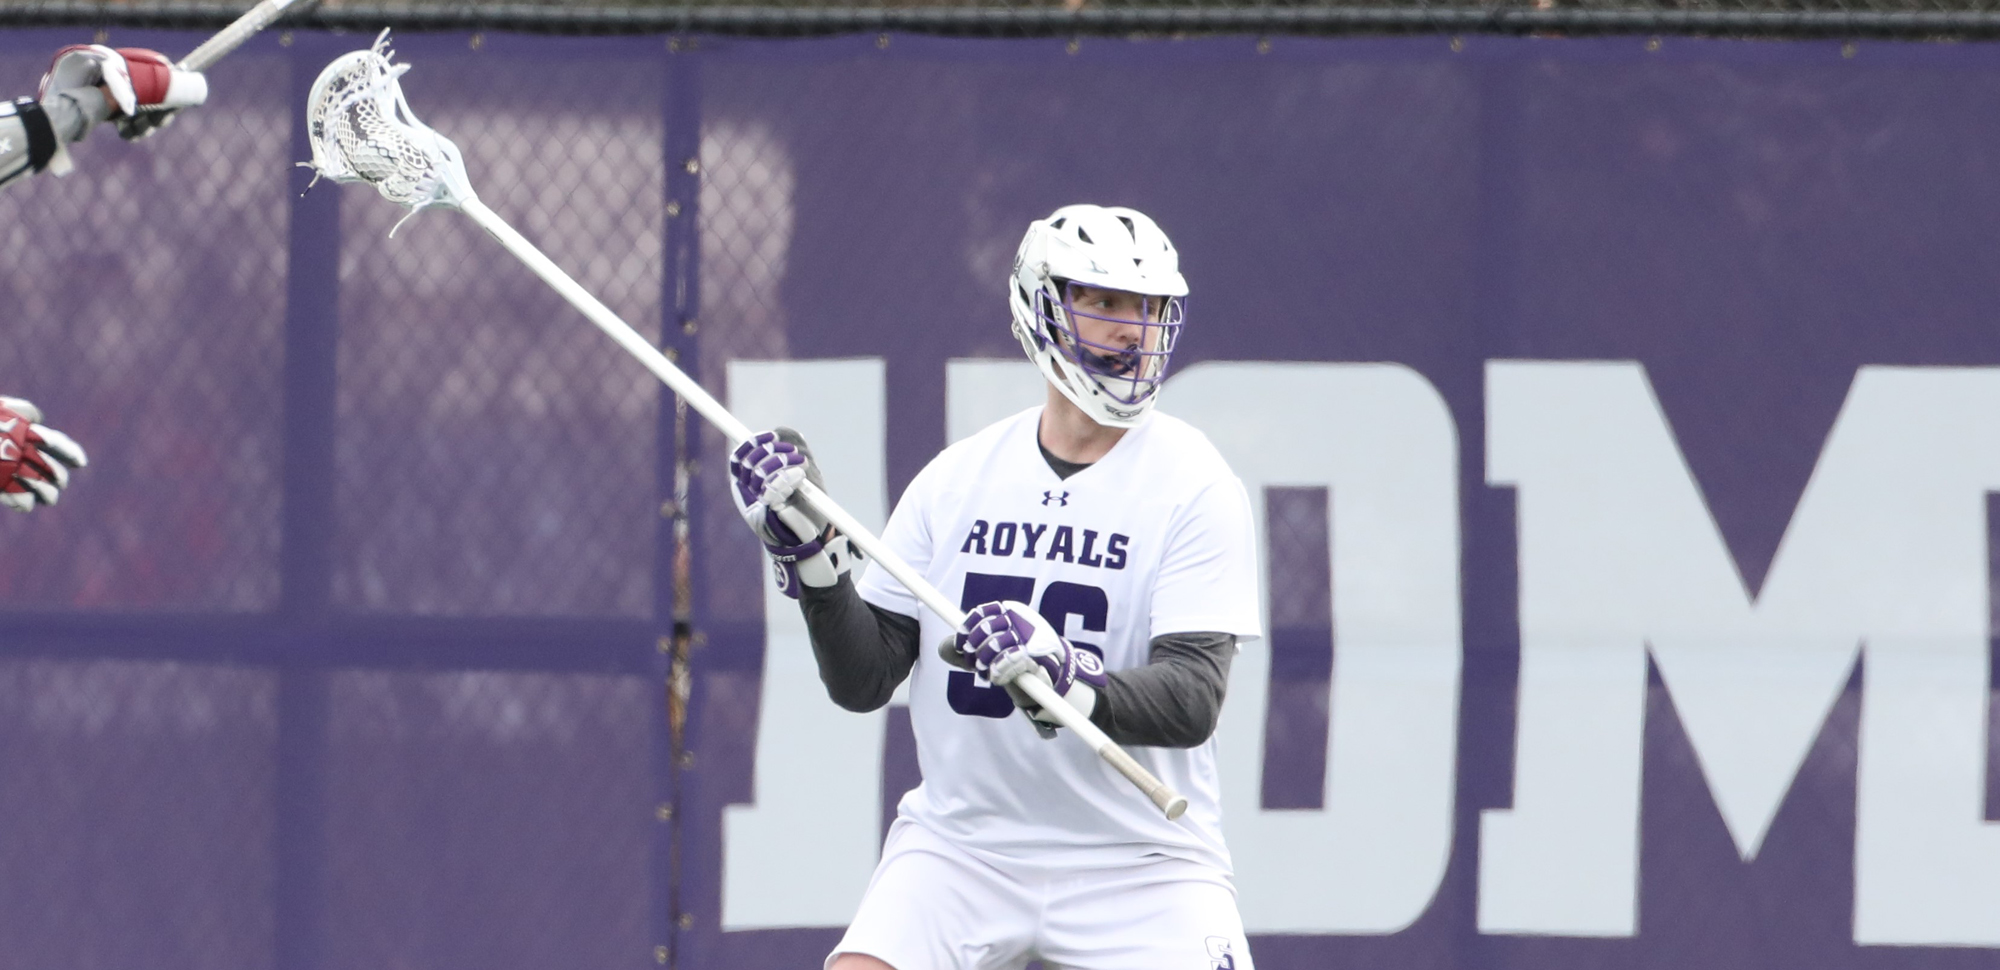 Junior Gordon Paul and the Scranton defense held Catholic to just one goal in the second half on Saturday as the Royals clinched a Landmark Conference playoff berth with a win over the Cardinals. © Photo by Timothy R. Dougherty / doubleeaglephotography.com